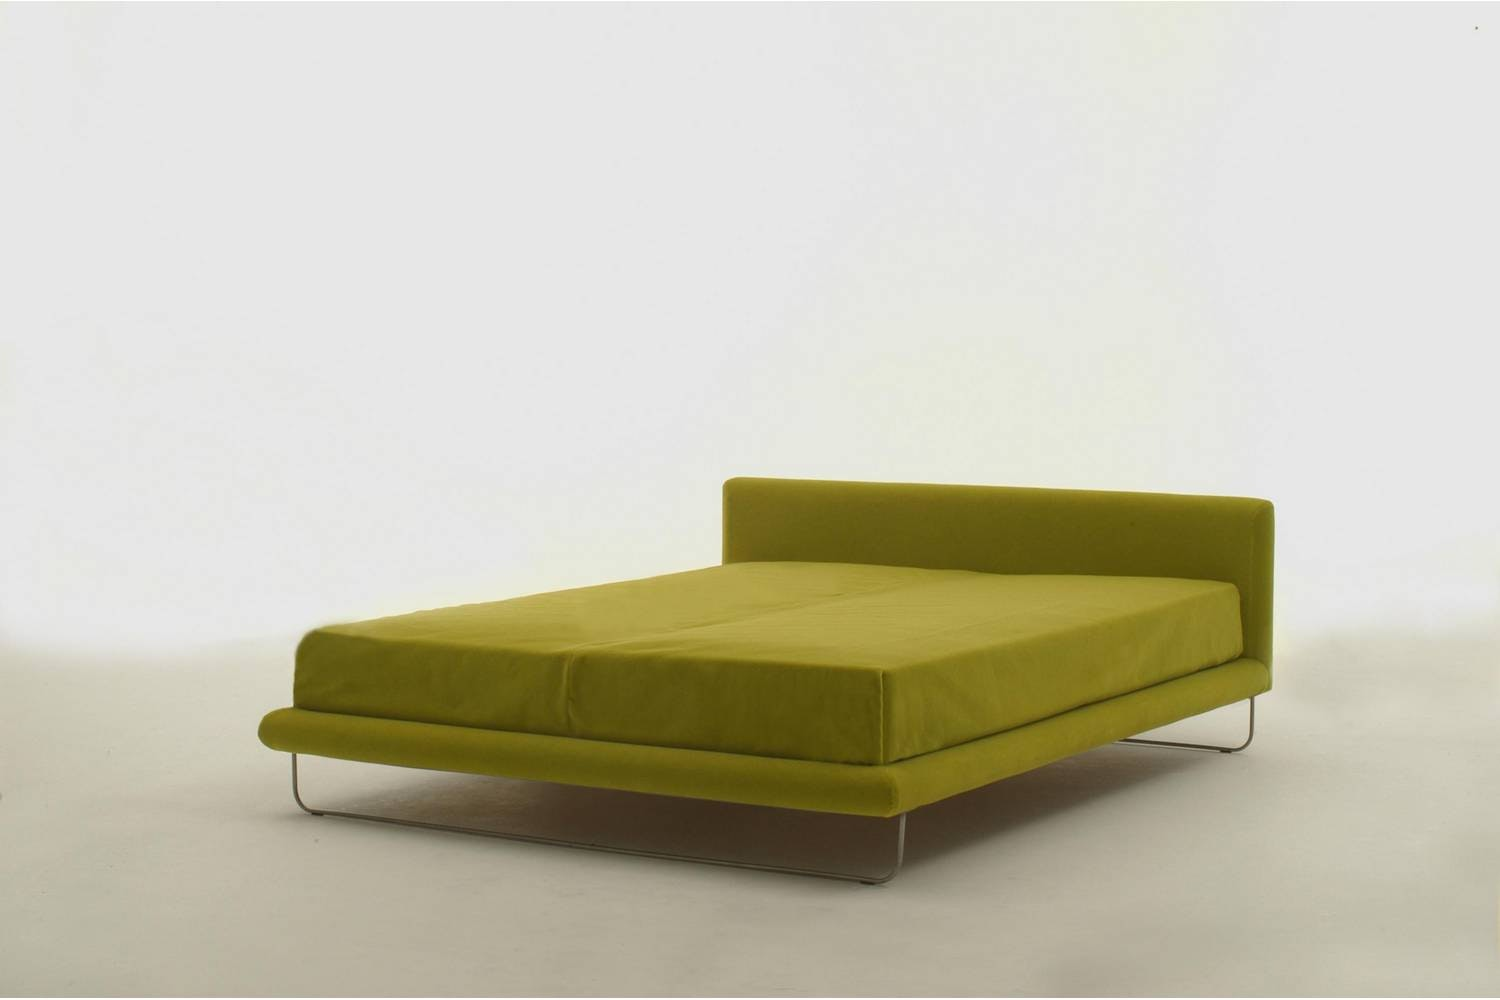 Avalon Bed by Eero Koivisto for Living Divani